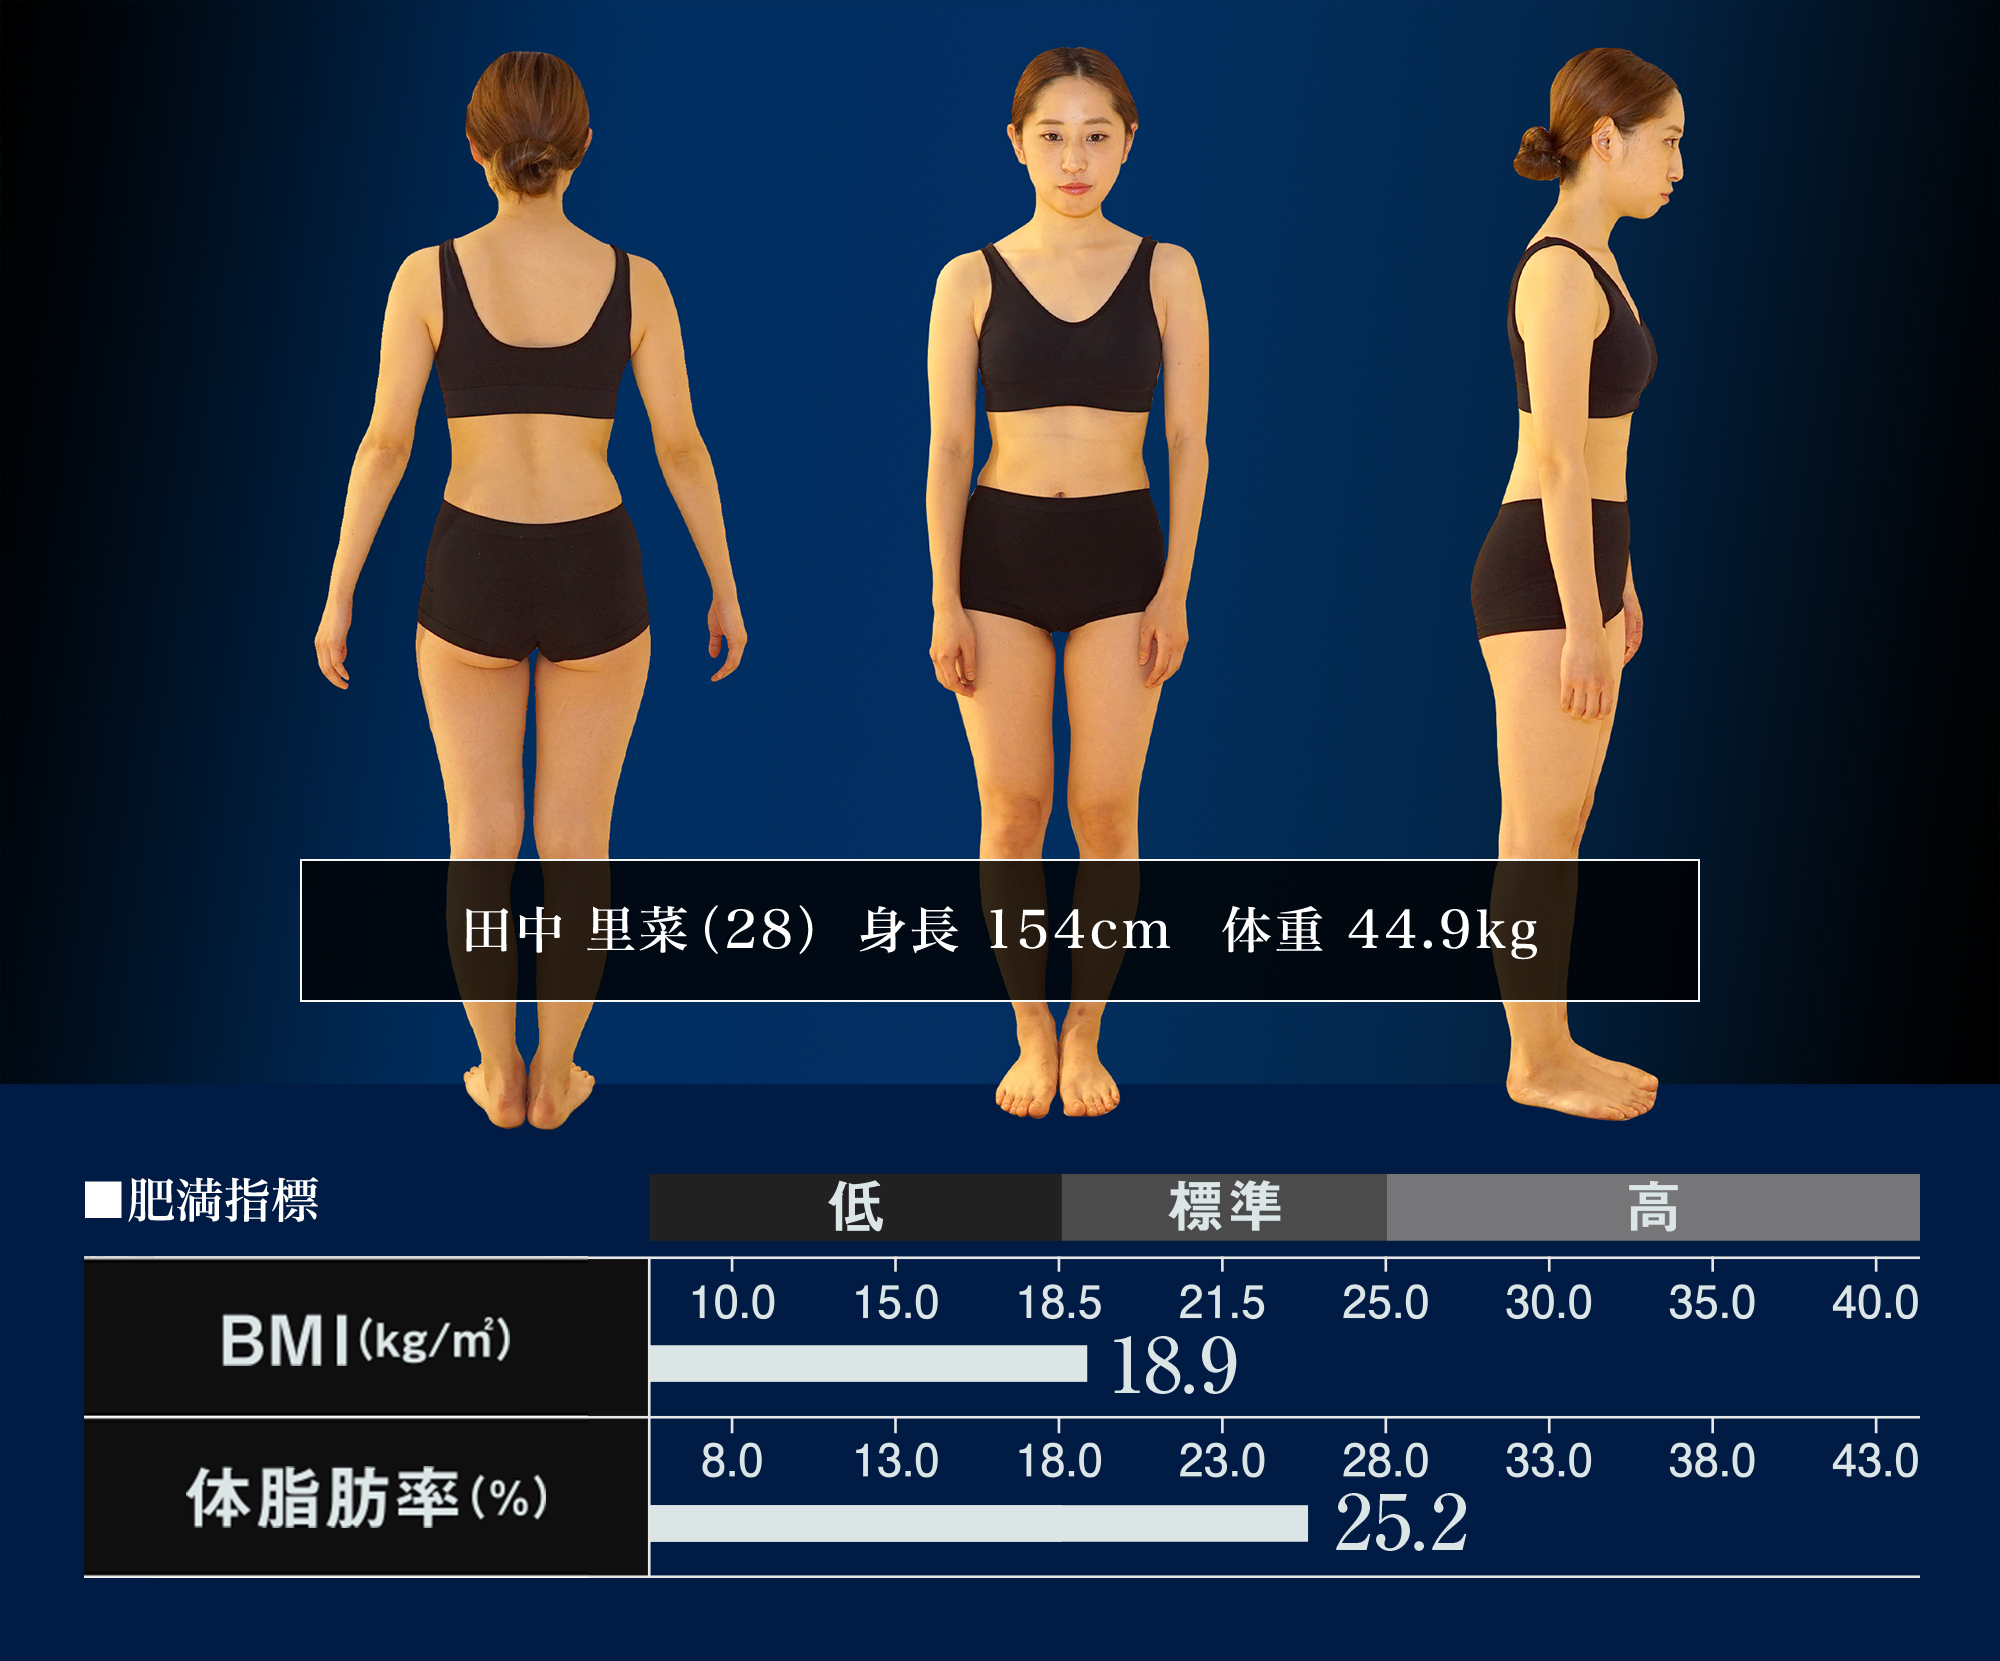 田中里菜(28)Height 154cm Weight44.9kg